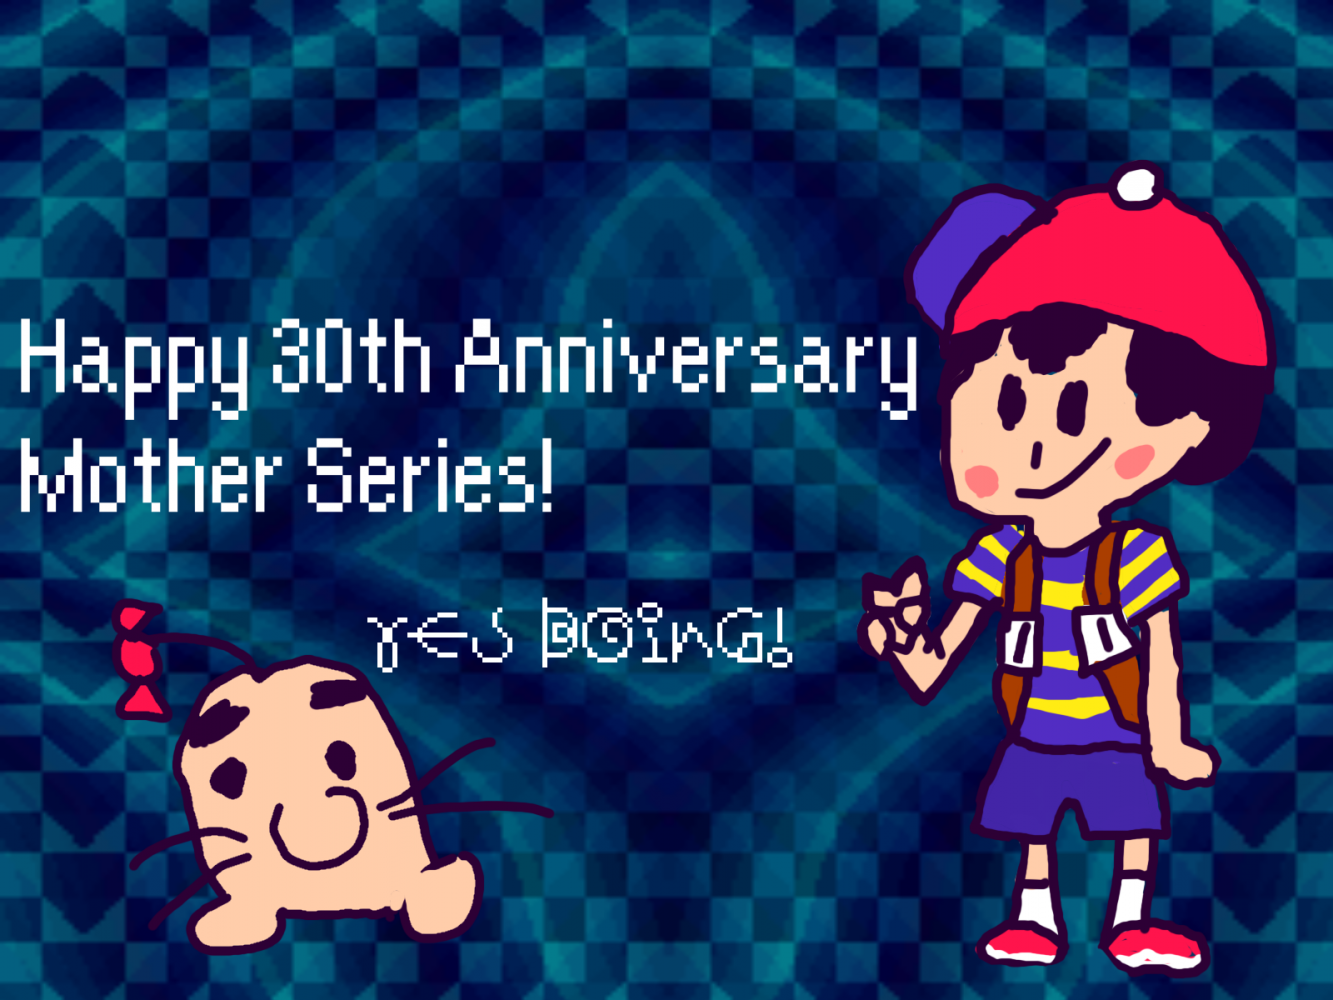 Pixilart - Happy 30th Anniversary Mother 1! by Coolguy1a123